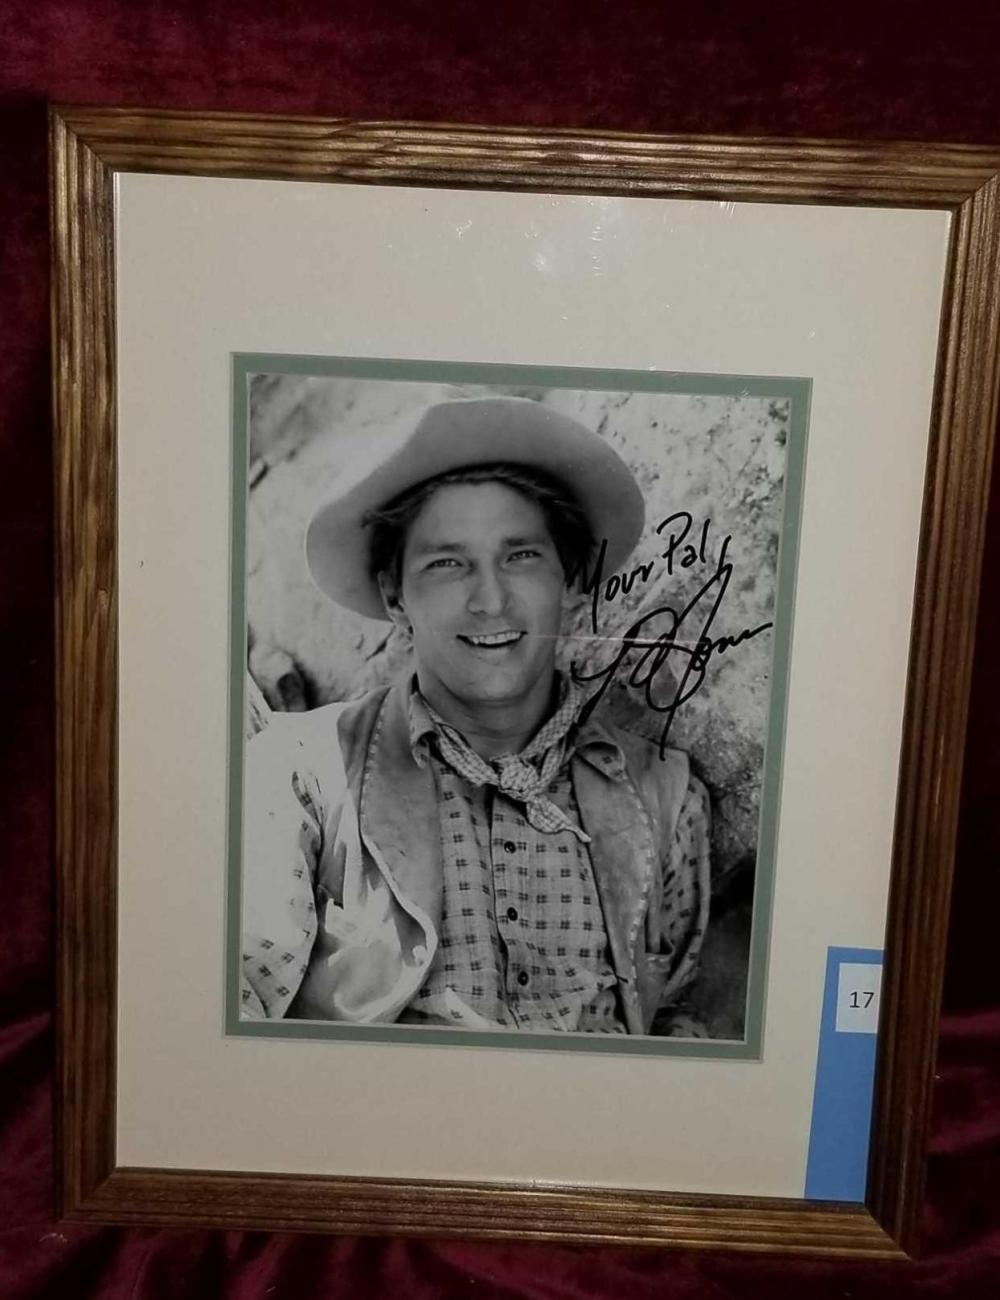 L.Q. JONES COWBOY SIGNED PHOTO